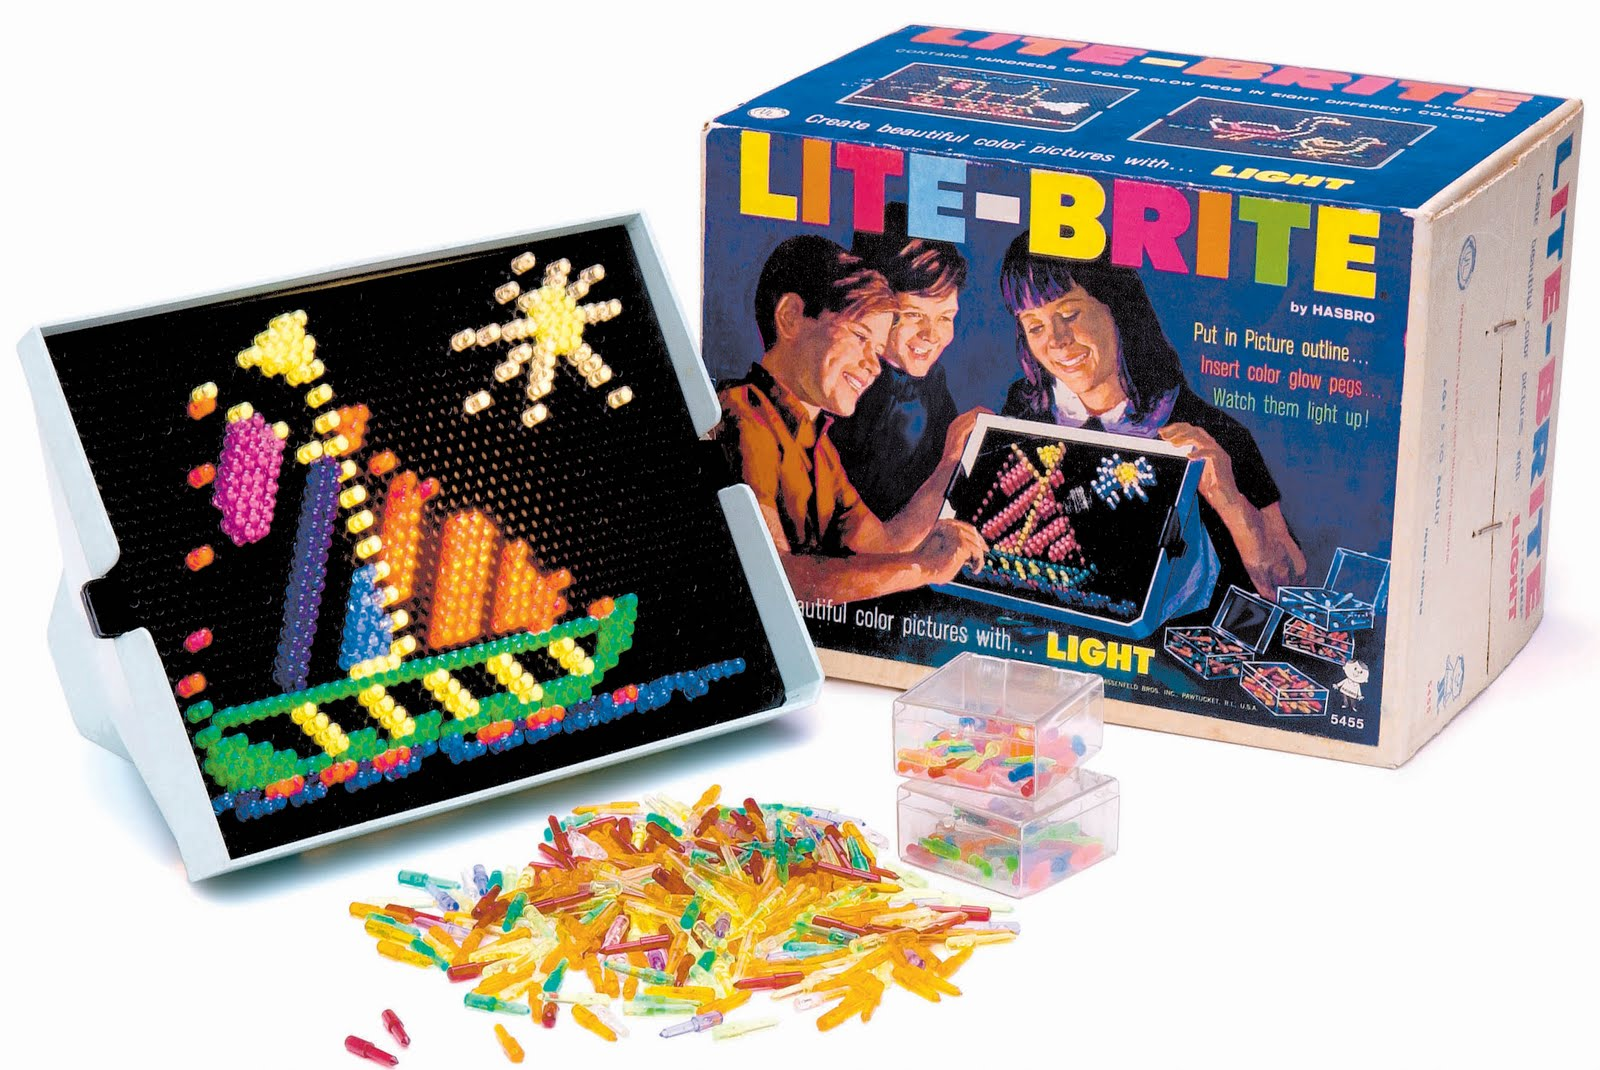 Building Toys From The 90s : Boomin toys our top unforgettable baby boomers